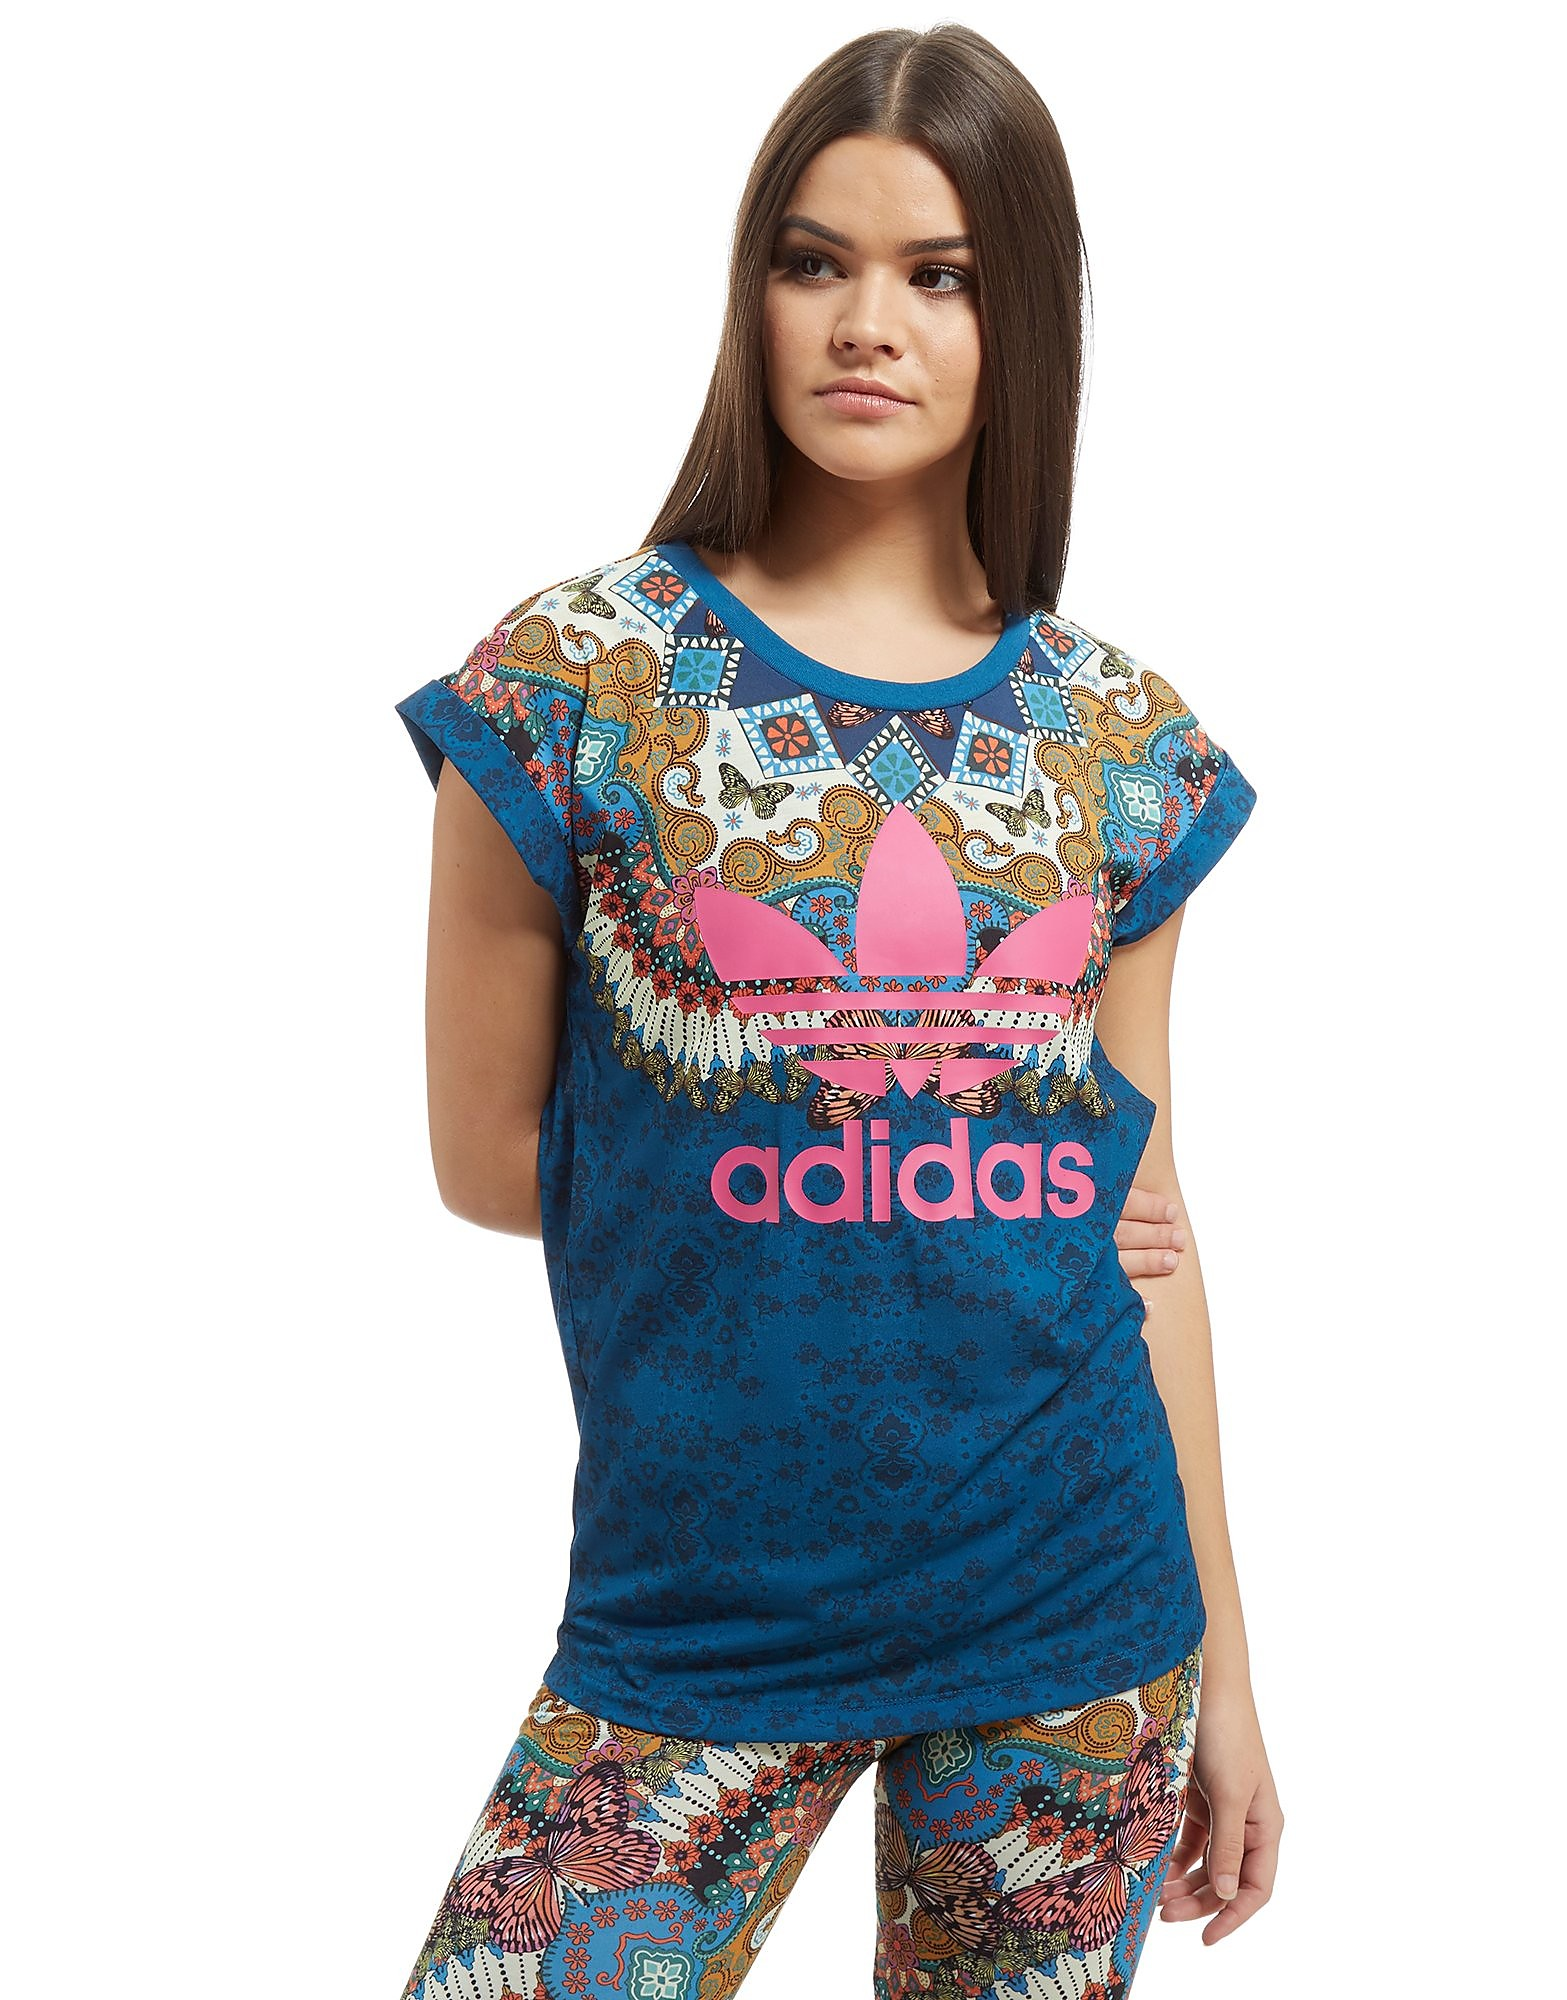 adidas Originals Borbomix T-Shirt